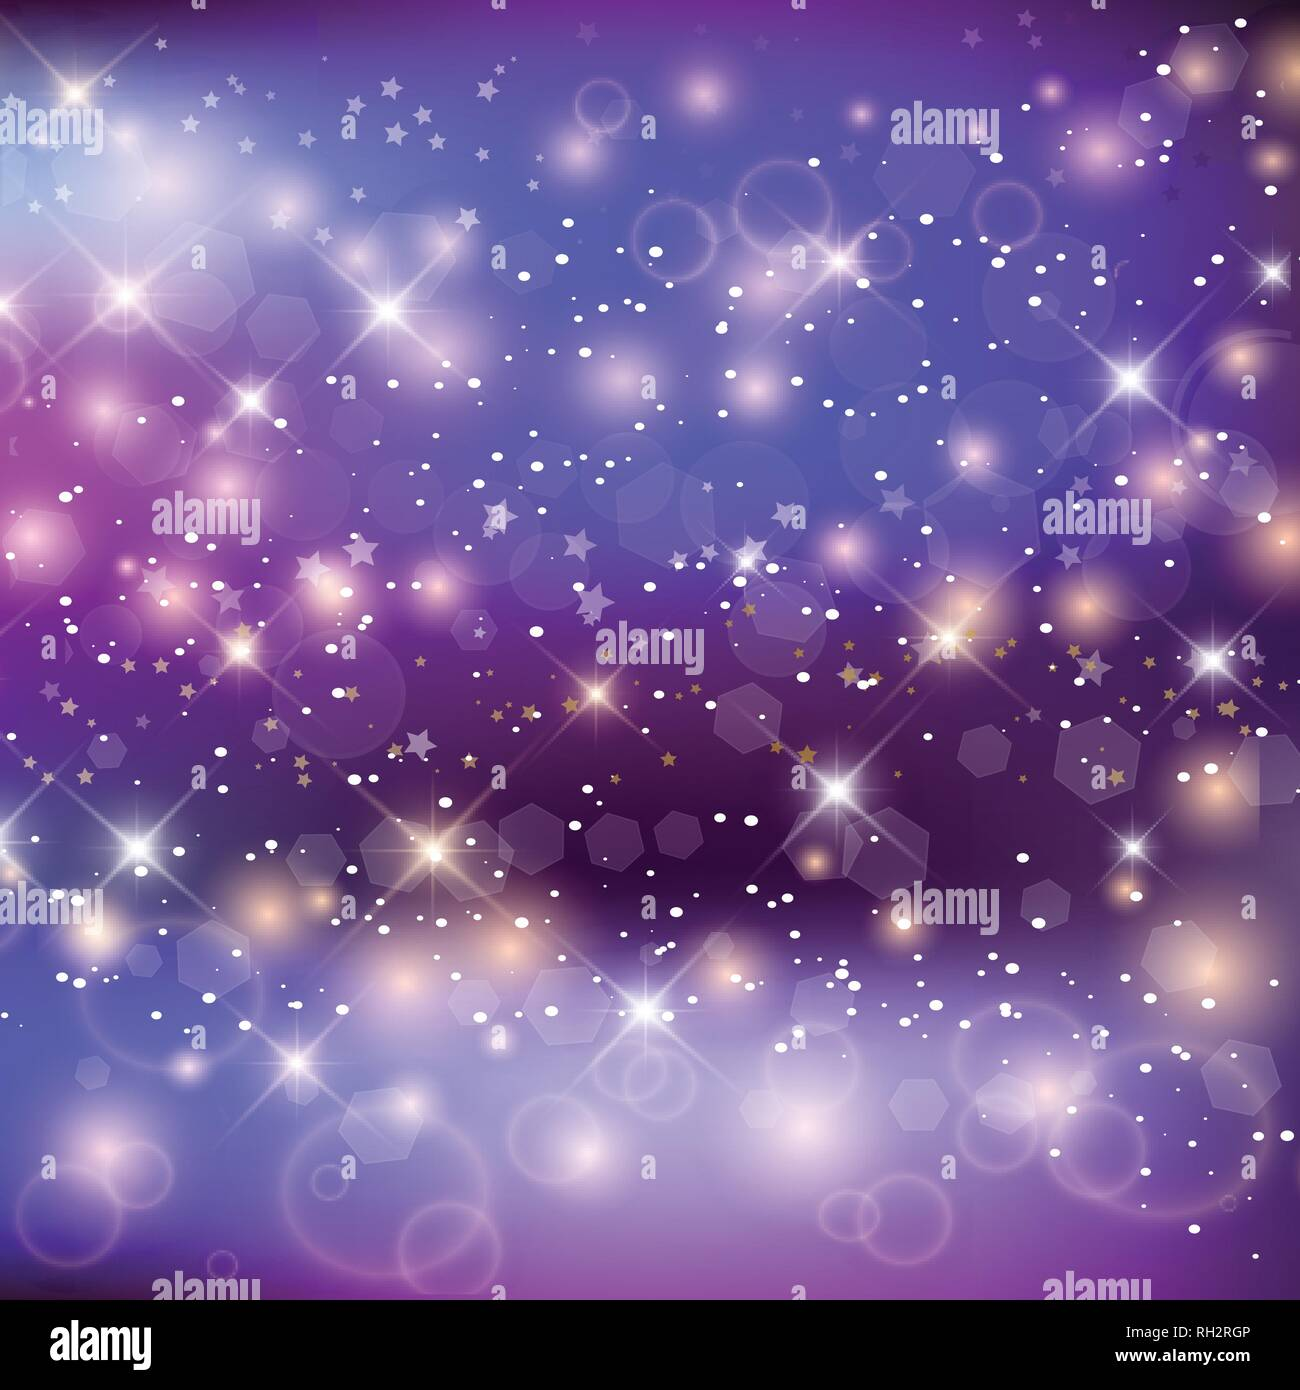 Magic Night Background With Rainbow Mesh. Kawaii Universe Banner In Princess Colors. Fantasy Gradient Backdrop With Hologram. Holographic Magic Backgr - Stock Vector